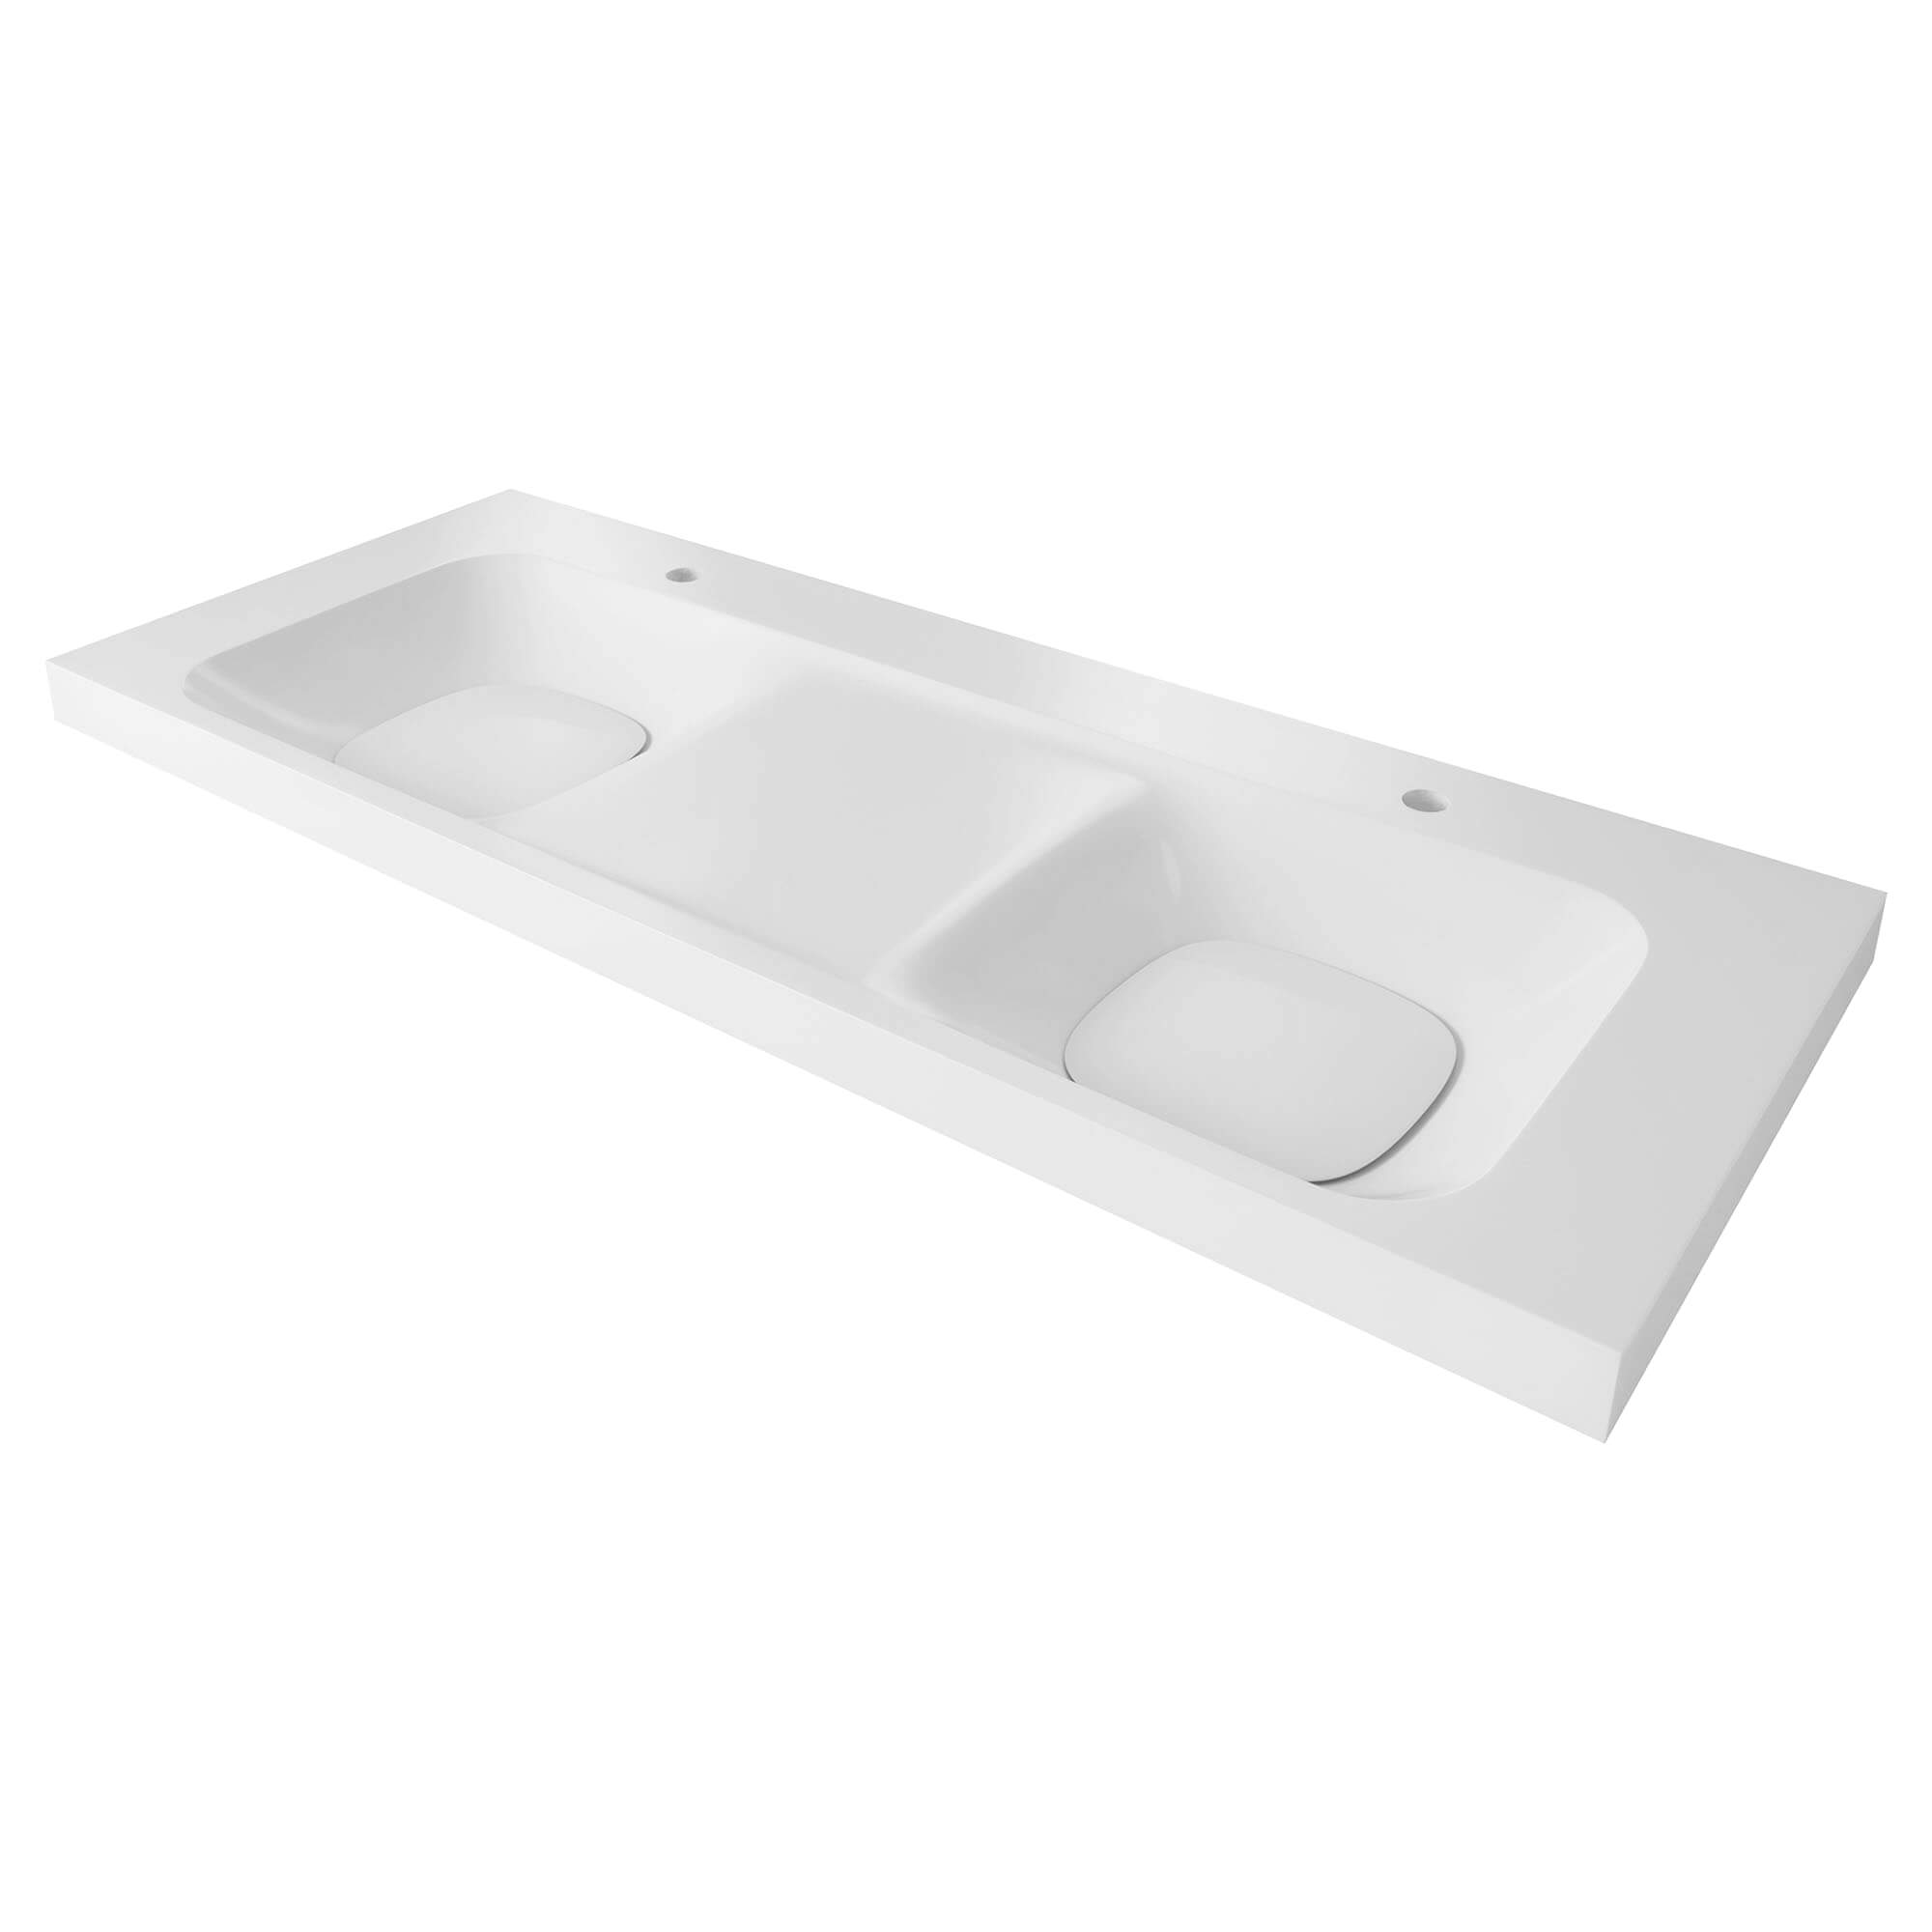 DXV Modulus 55-inch Two Single-Hole Double Bathroom Sink